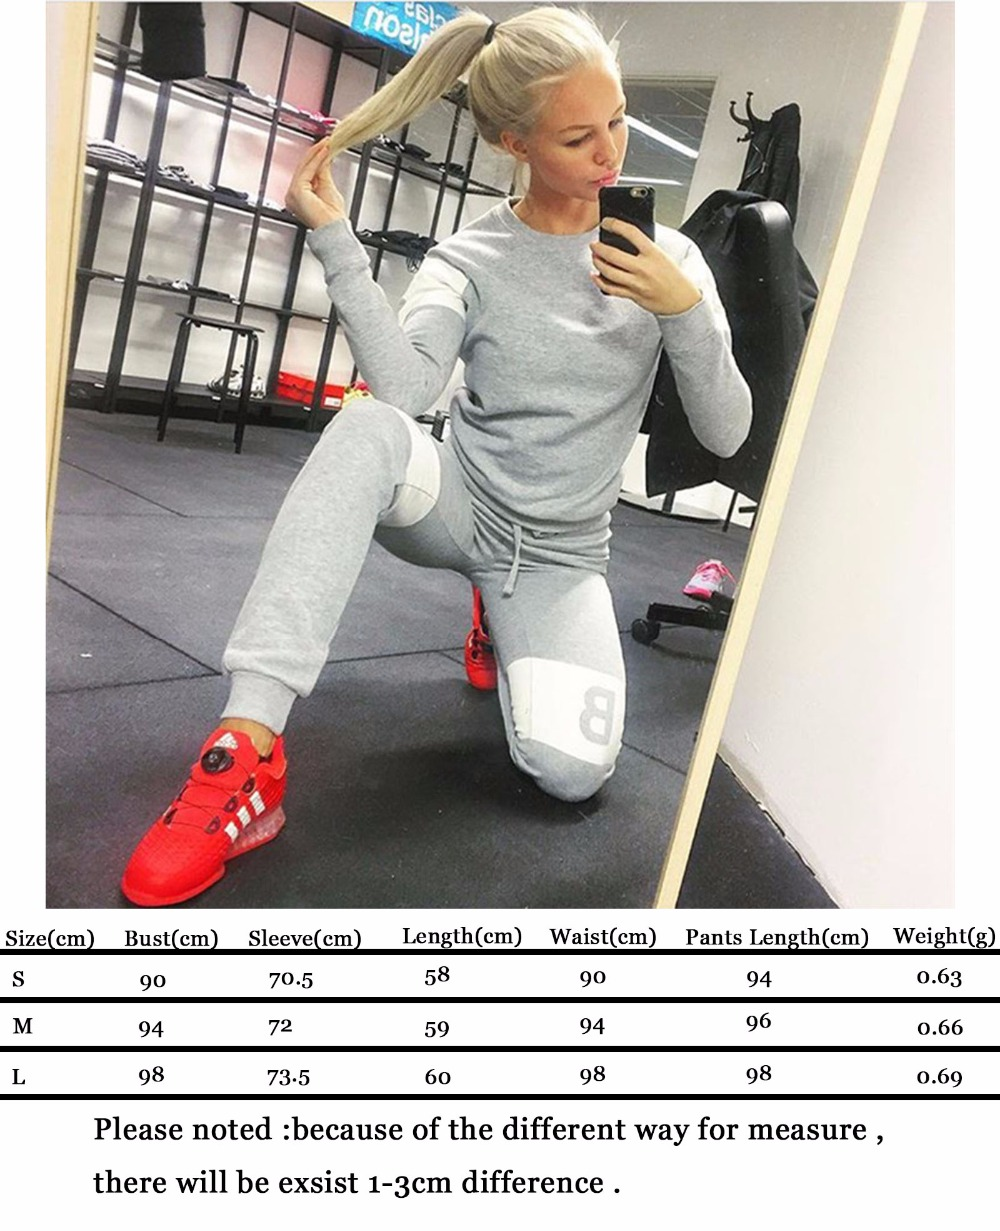 Honest Winter Thermo Leggins Leggings Fitness Sport Jogging Pants Black S M L Padded Consumers First Clothing, Shoes, Accessories